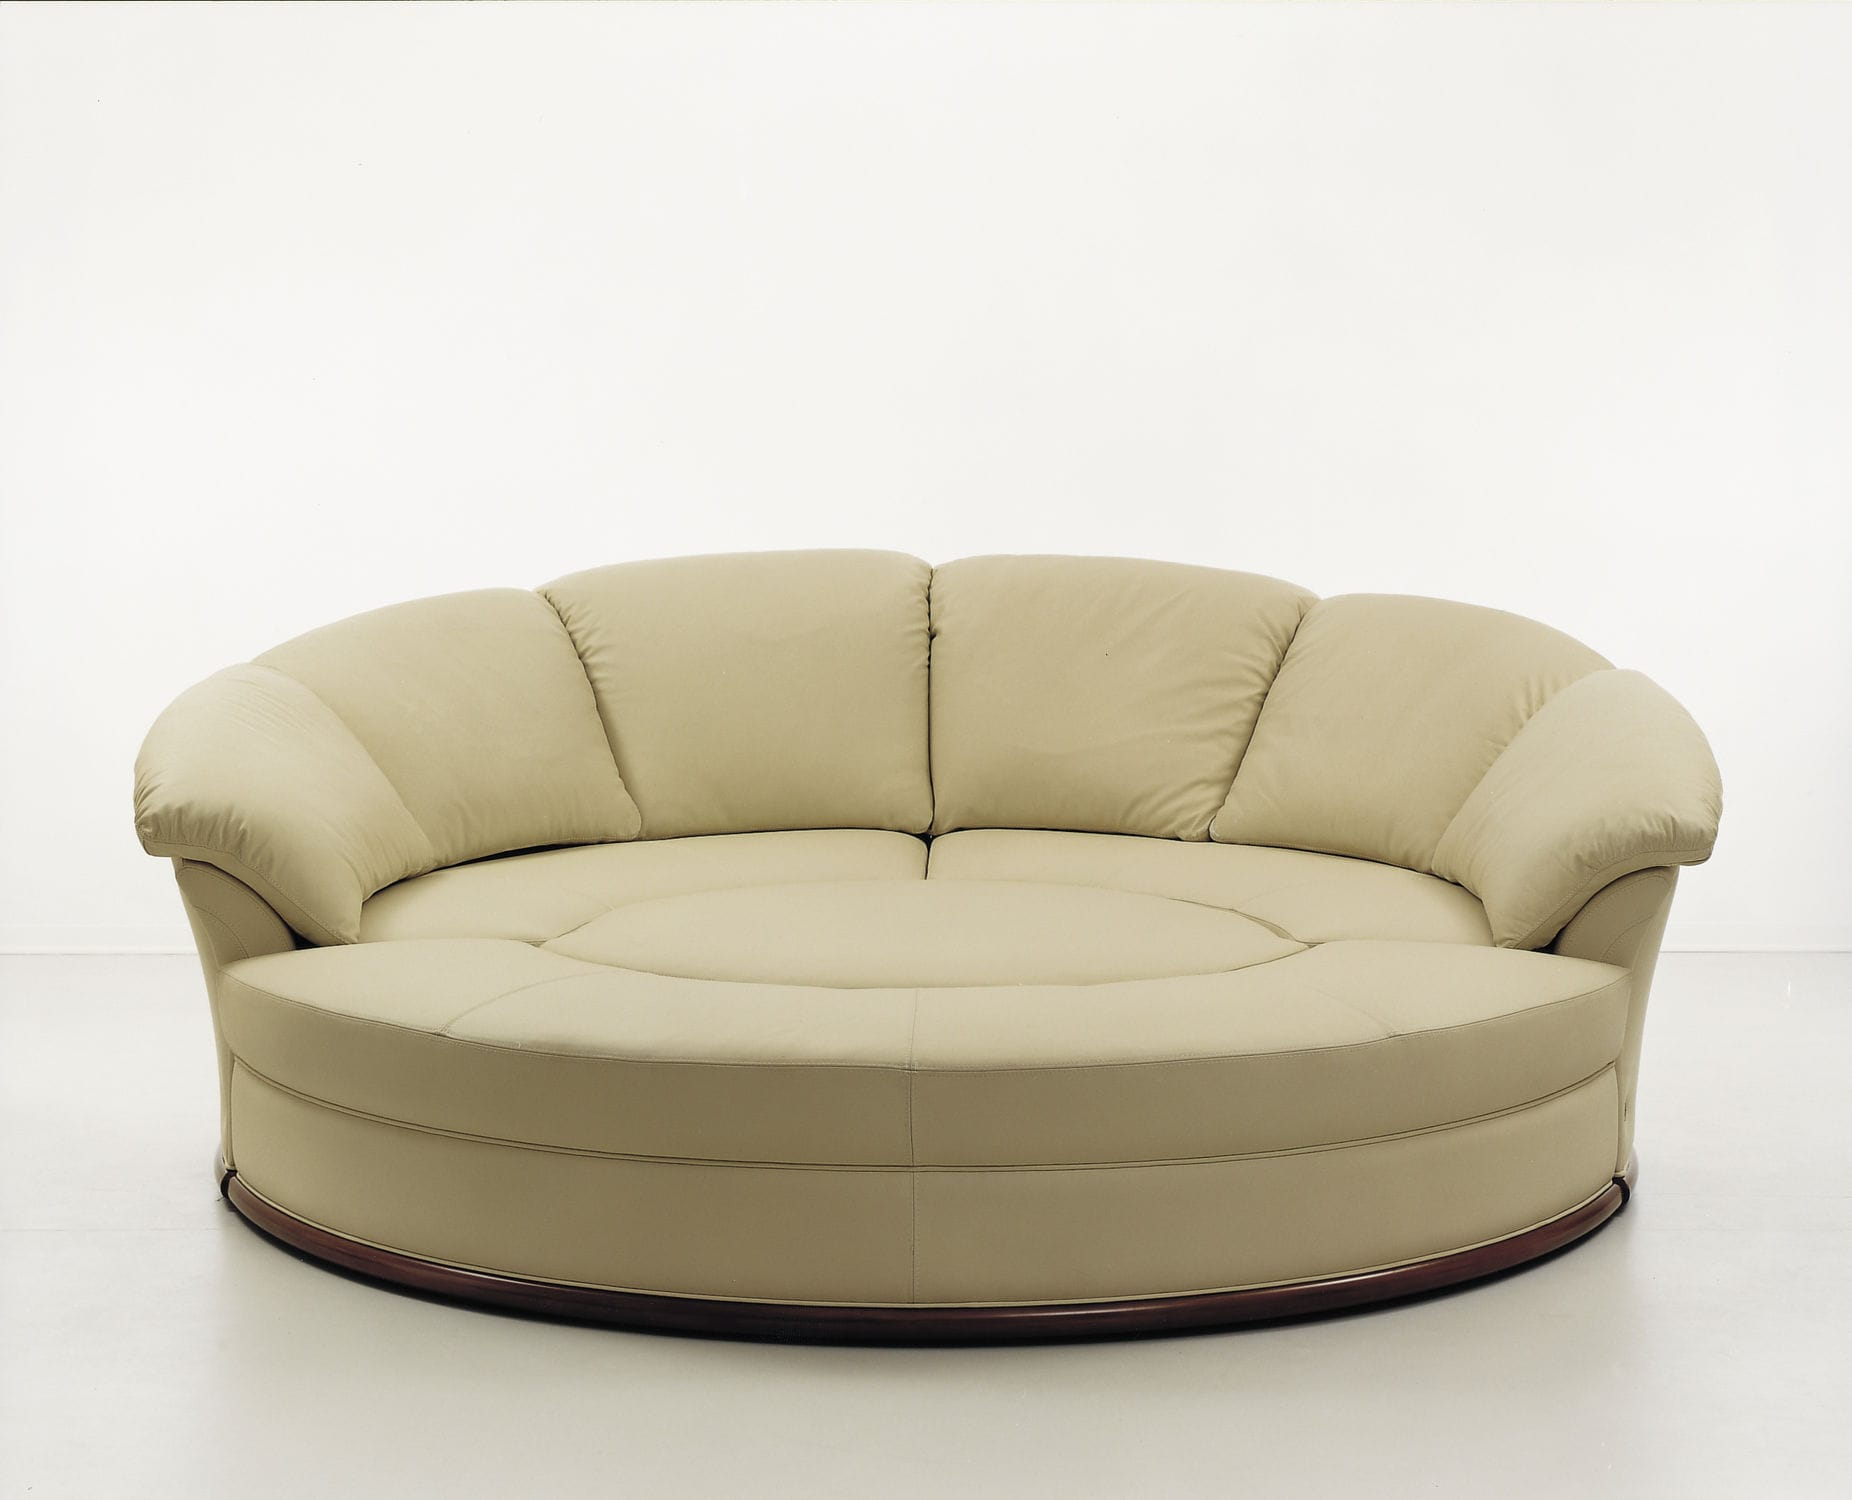 Exceptional ... Round Sofa / Modular / Contemporary / Leather